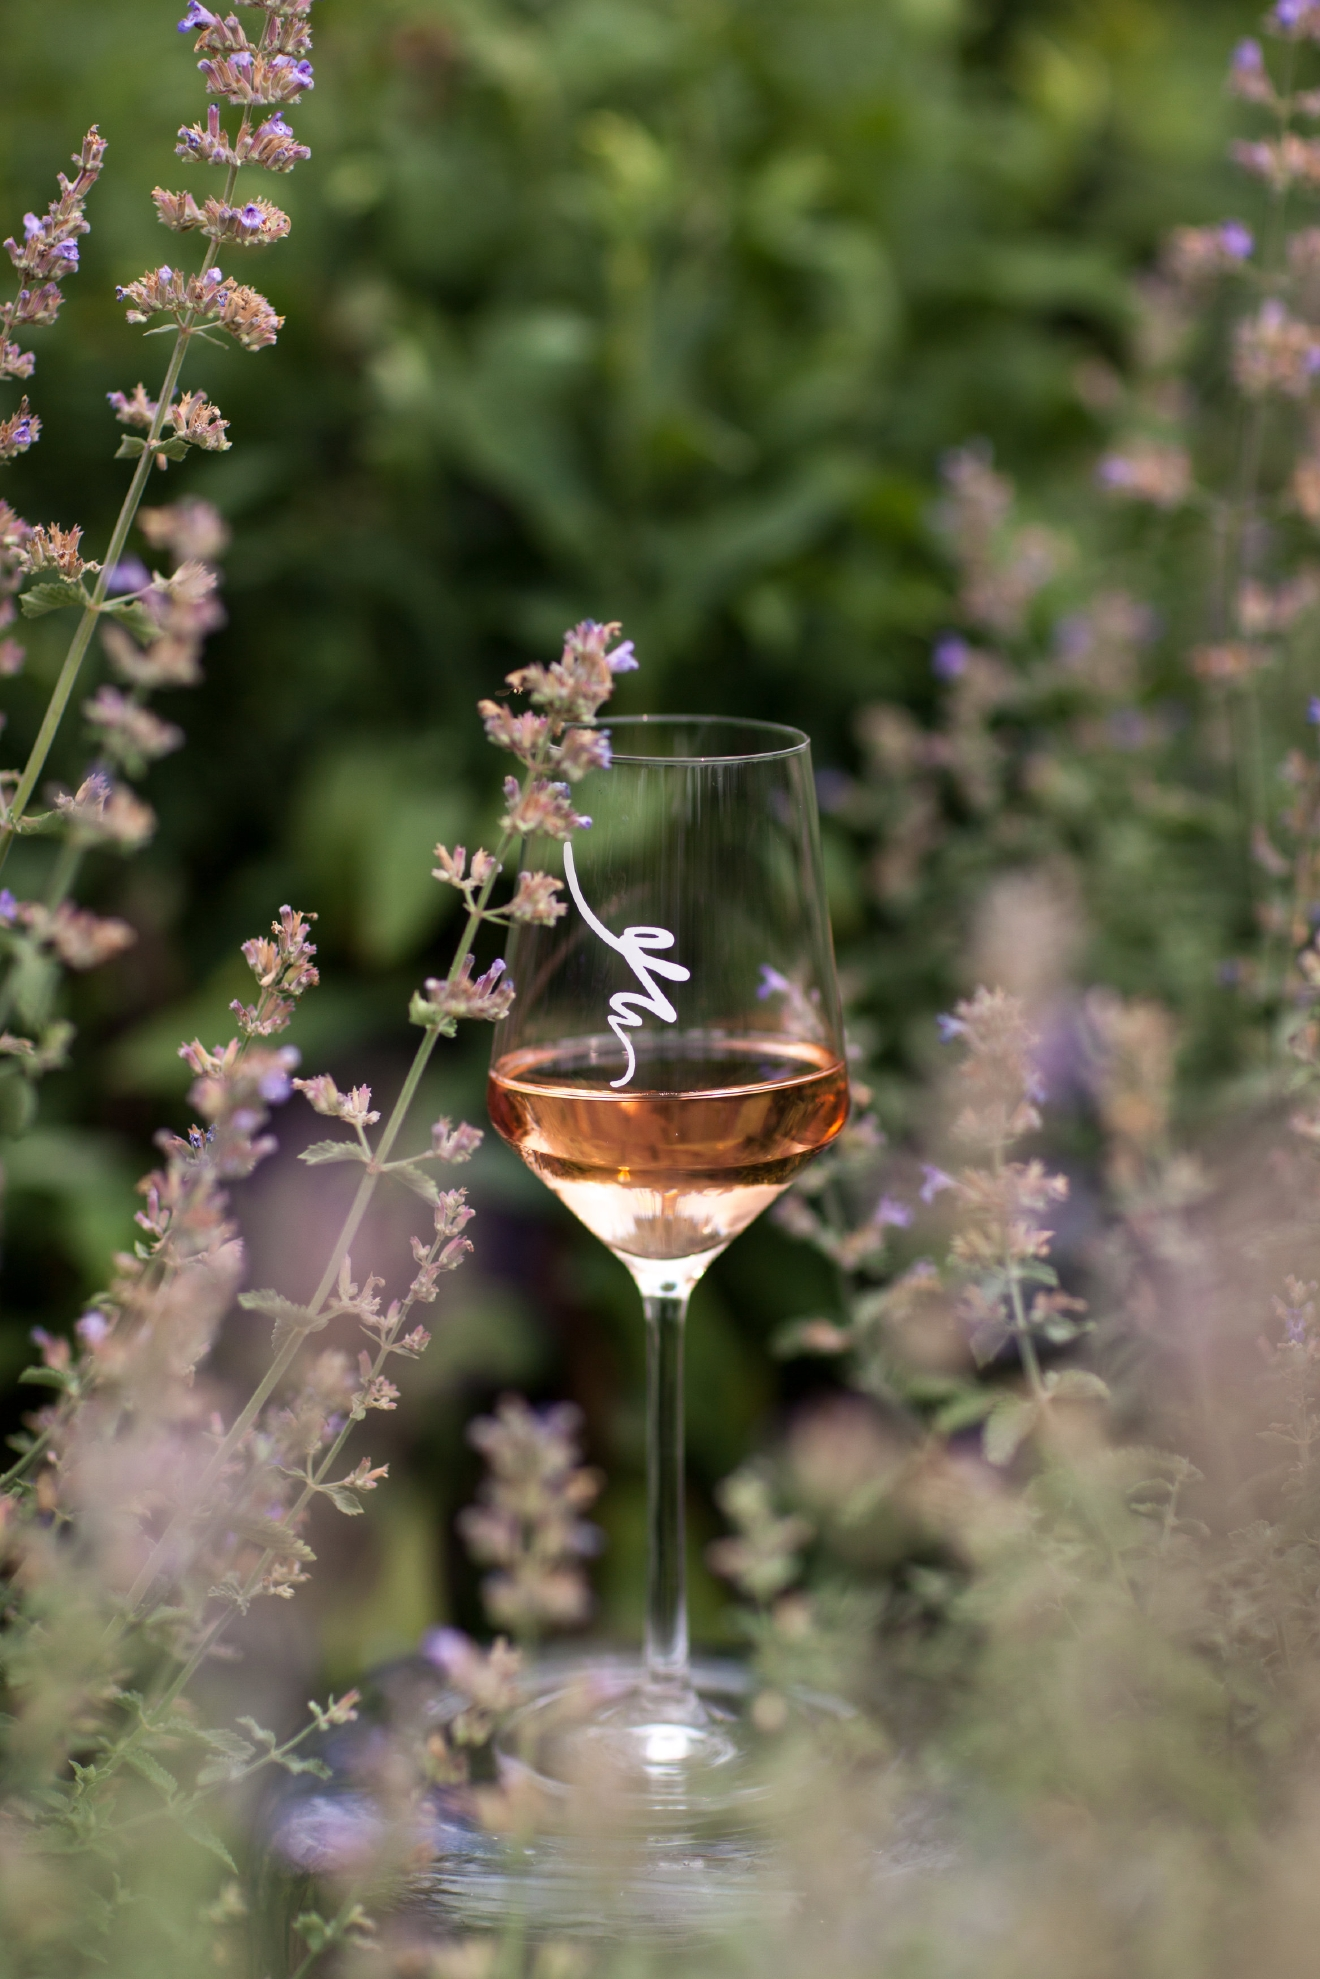 Looking for a Rose to serve at your next BBQ, or to pack in the picnic basket? This is your best bet as it goes well with burgers and fried chicken. (Image: Courtesy Early Mountain Vineyards)